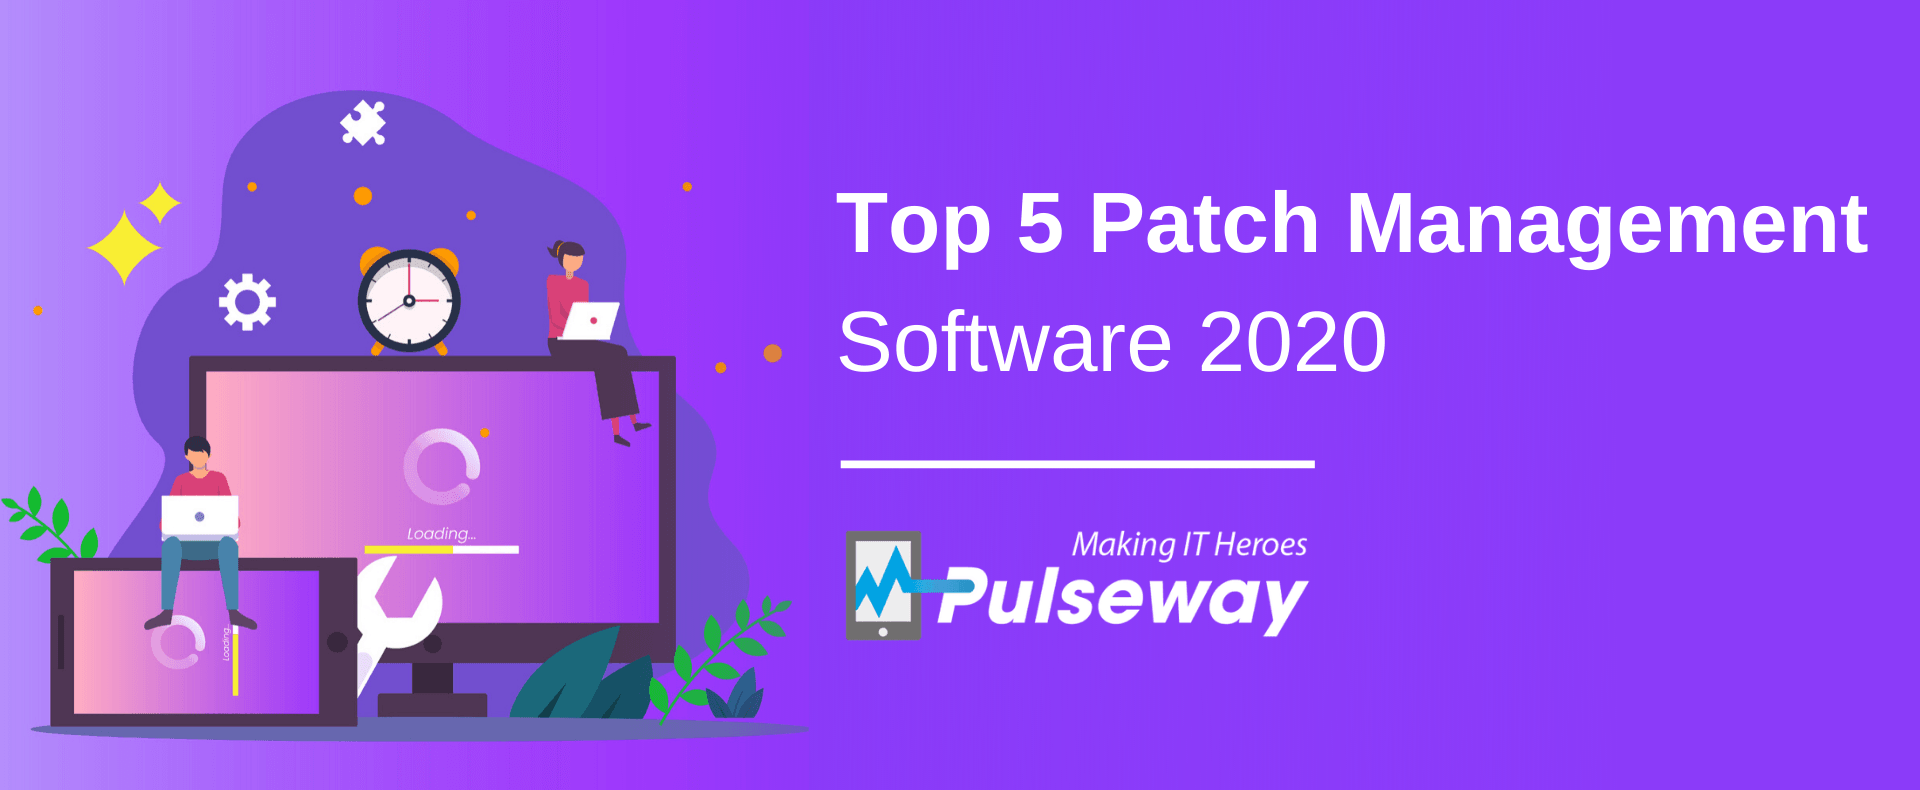 Top 5 Patch Management Software in 2020